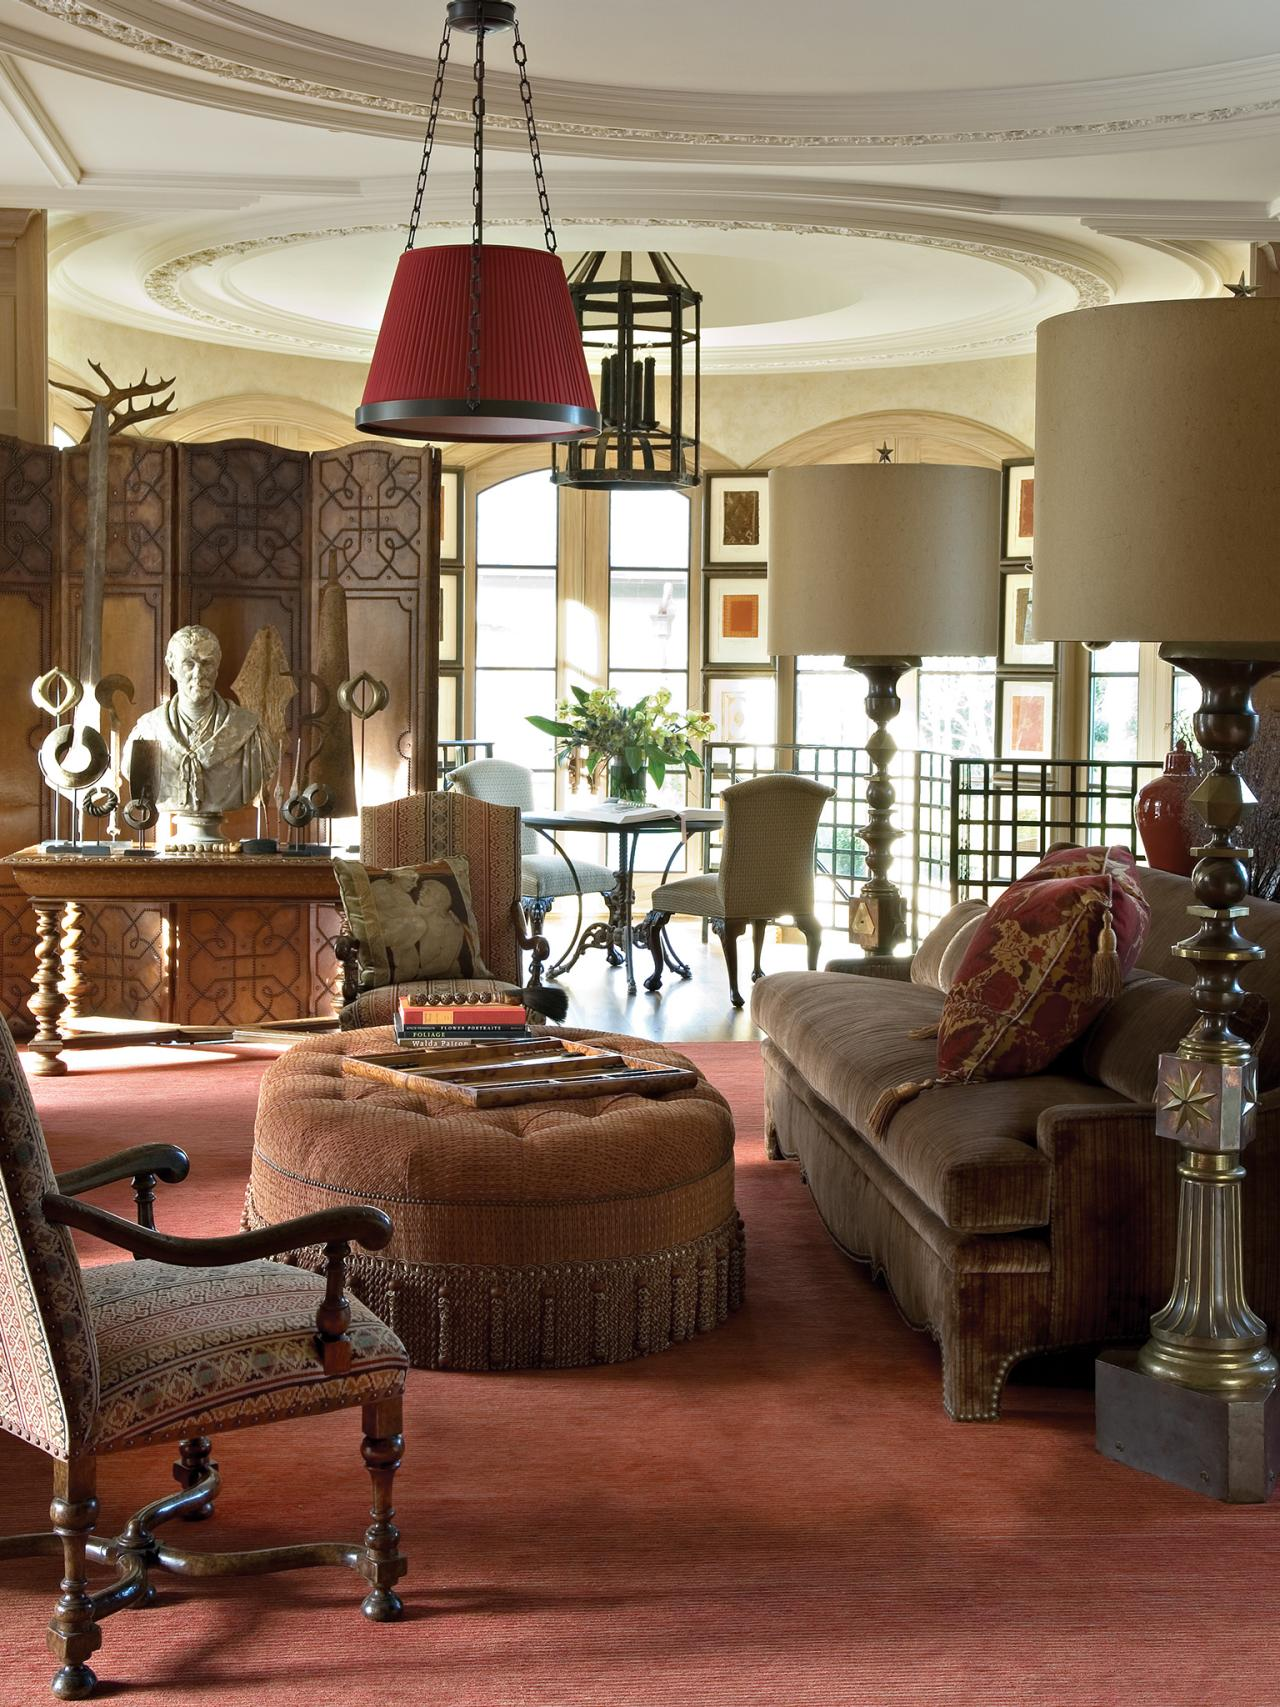 Photos barry dixon hgtv - Show pics of decorative sitting rooms ...